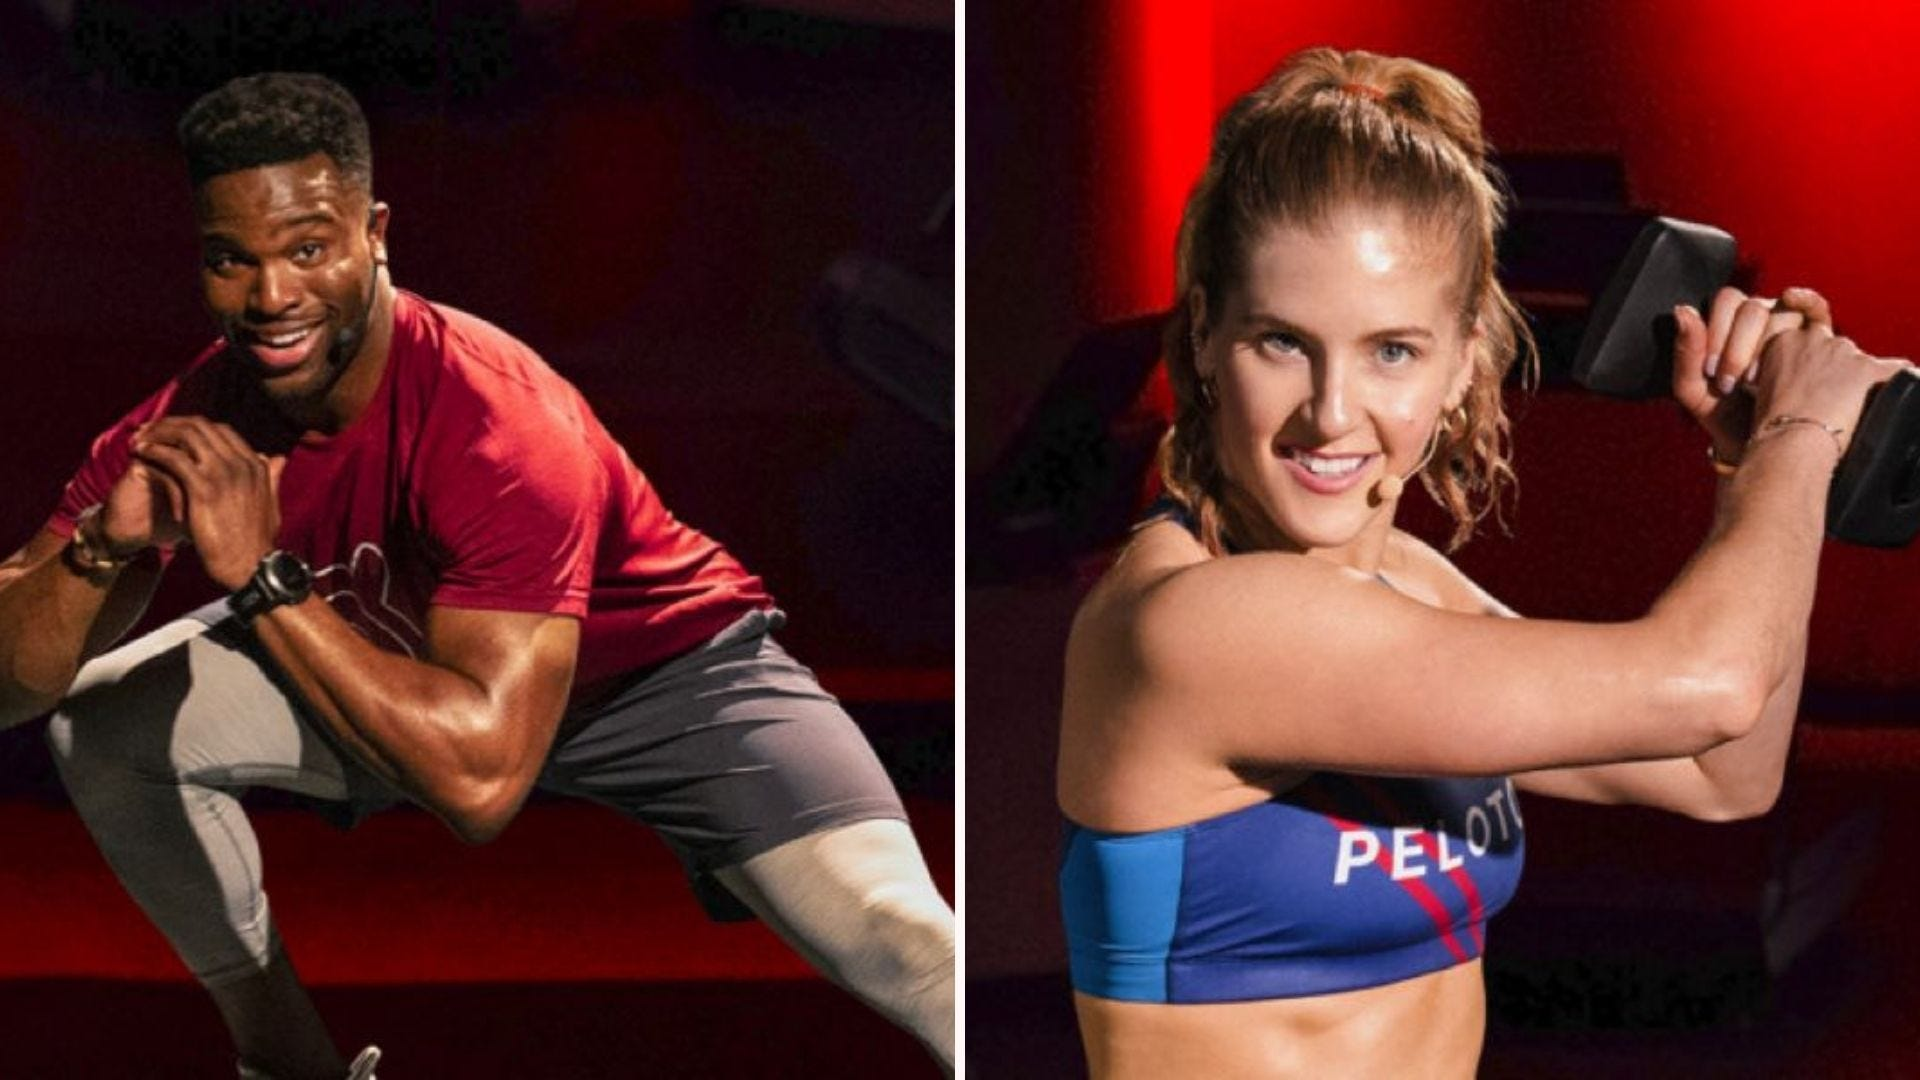 Two Peloton fitness trainers leading workouts.